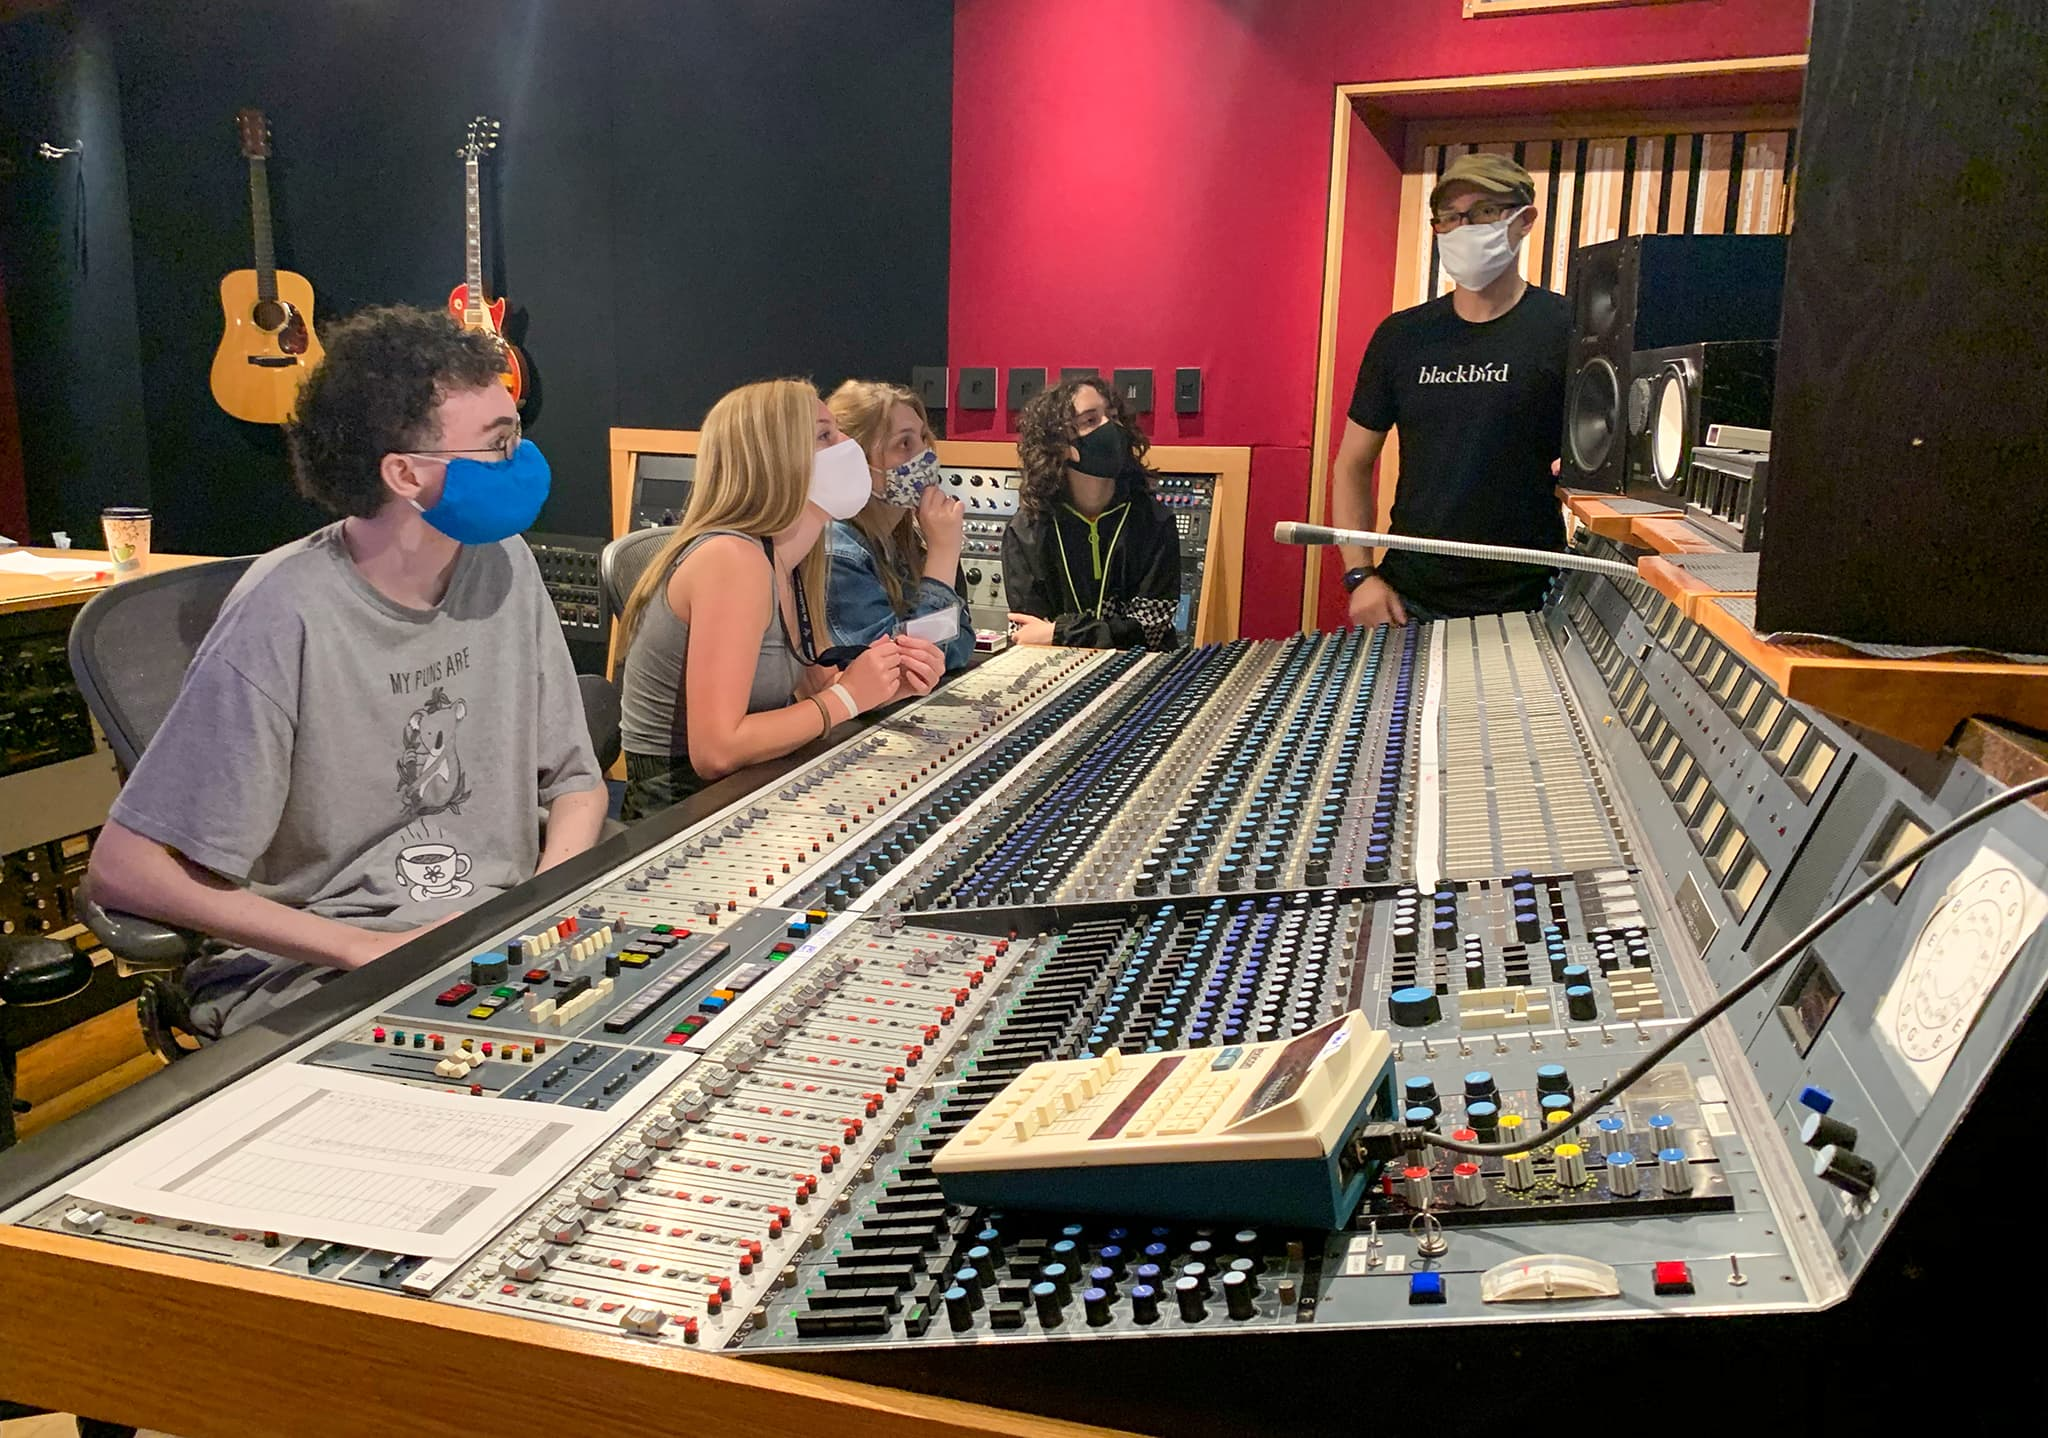 campers at the neve 8078 console